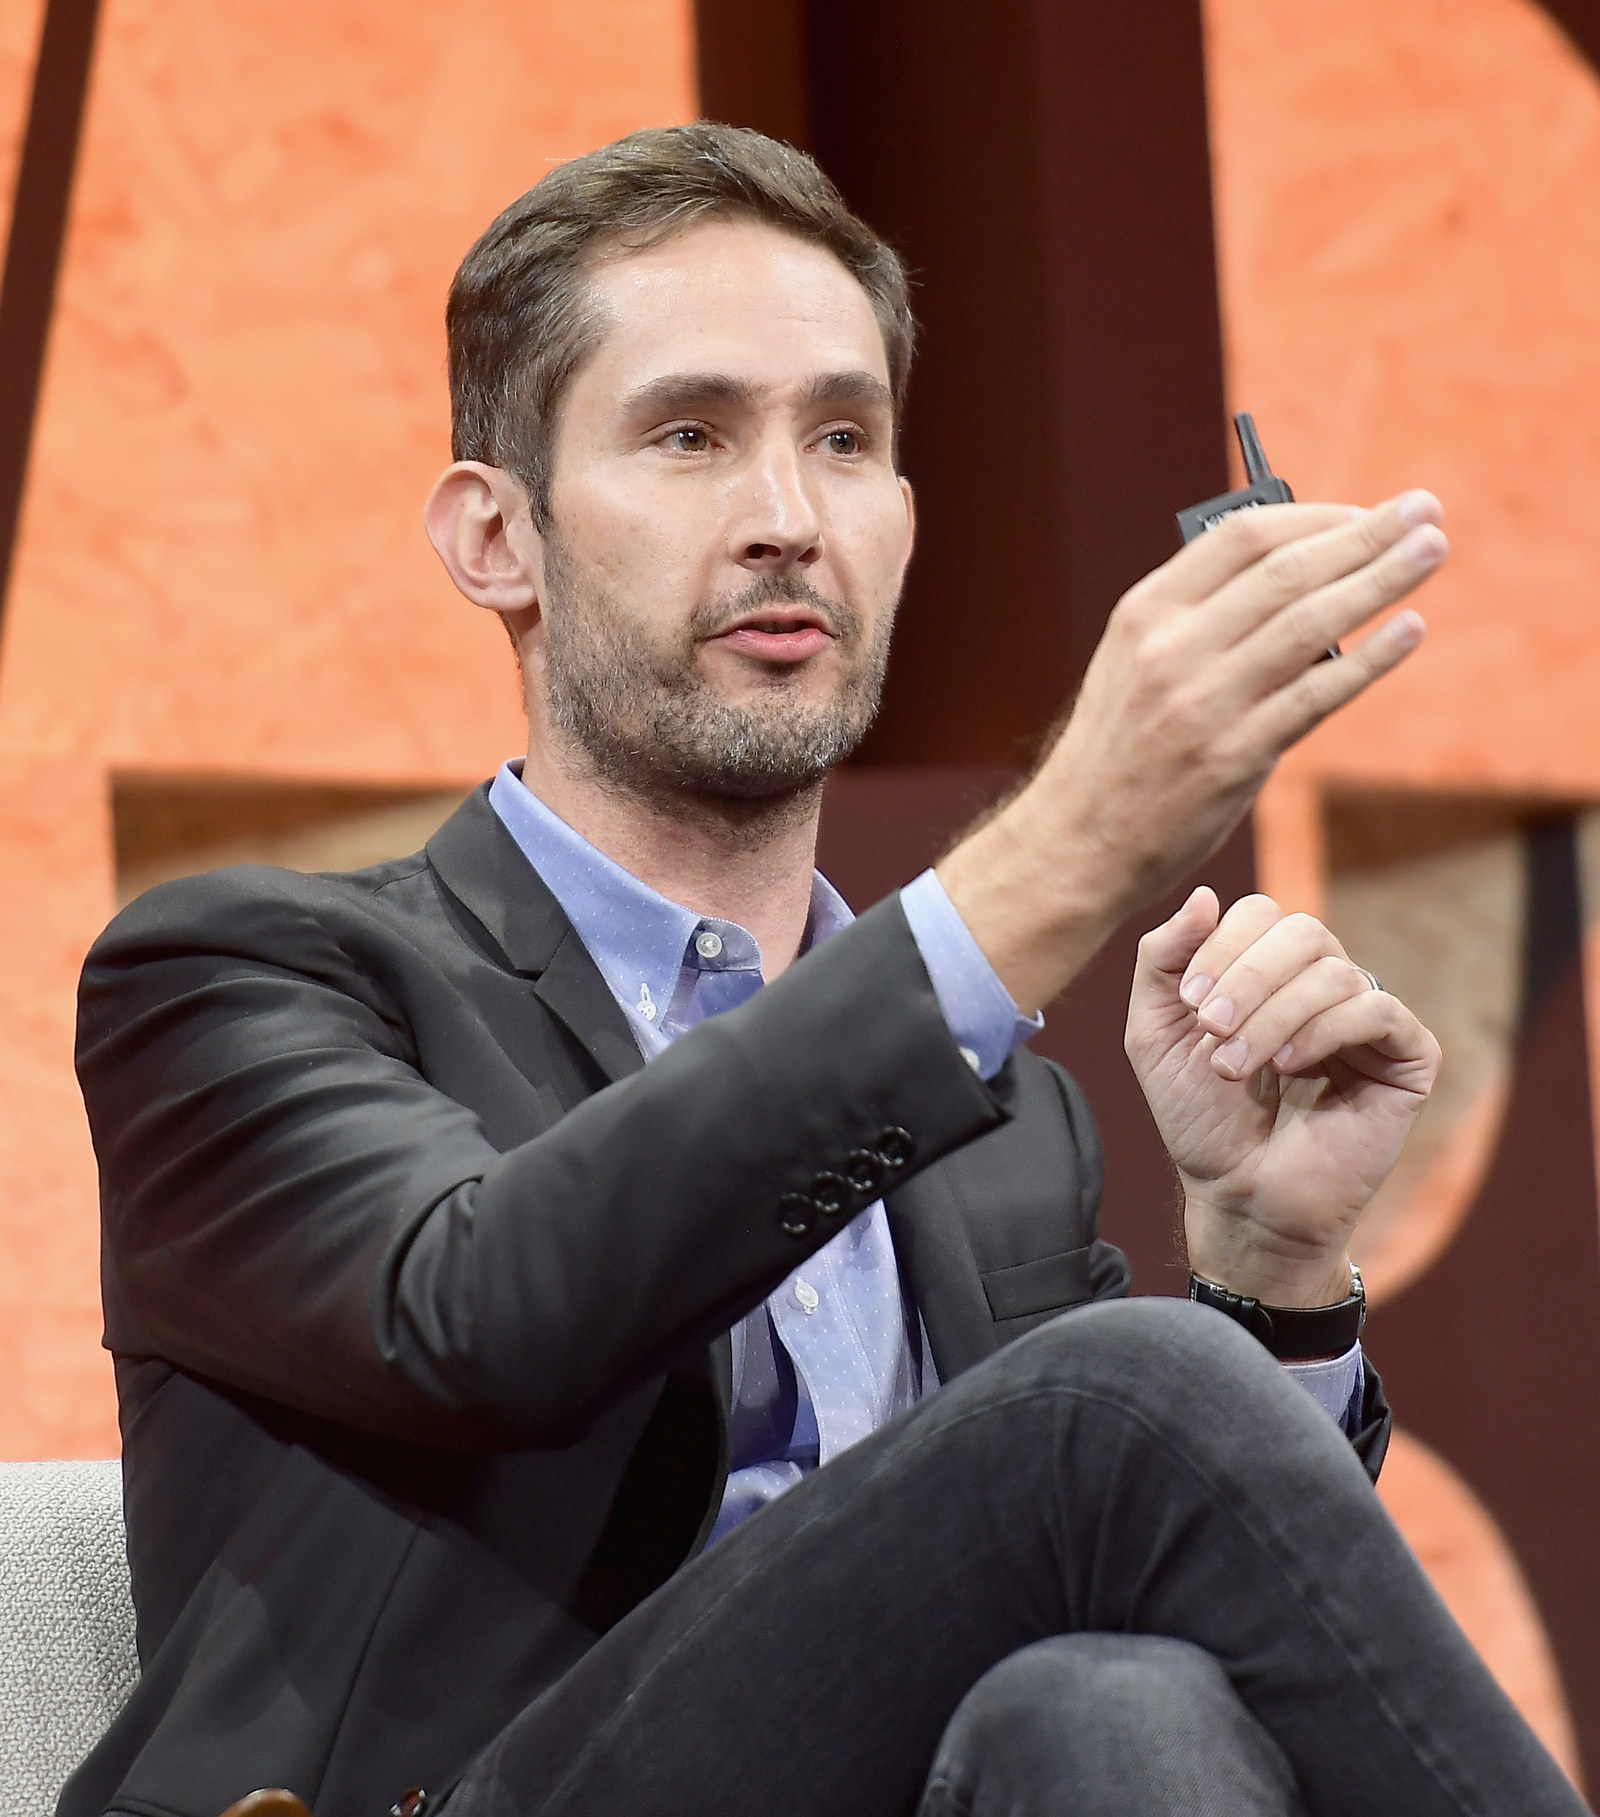 Co-Founder and CEO of Instagram Kevin Systrom.